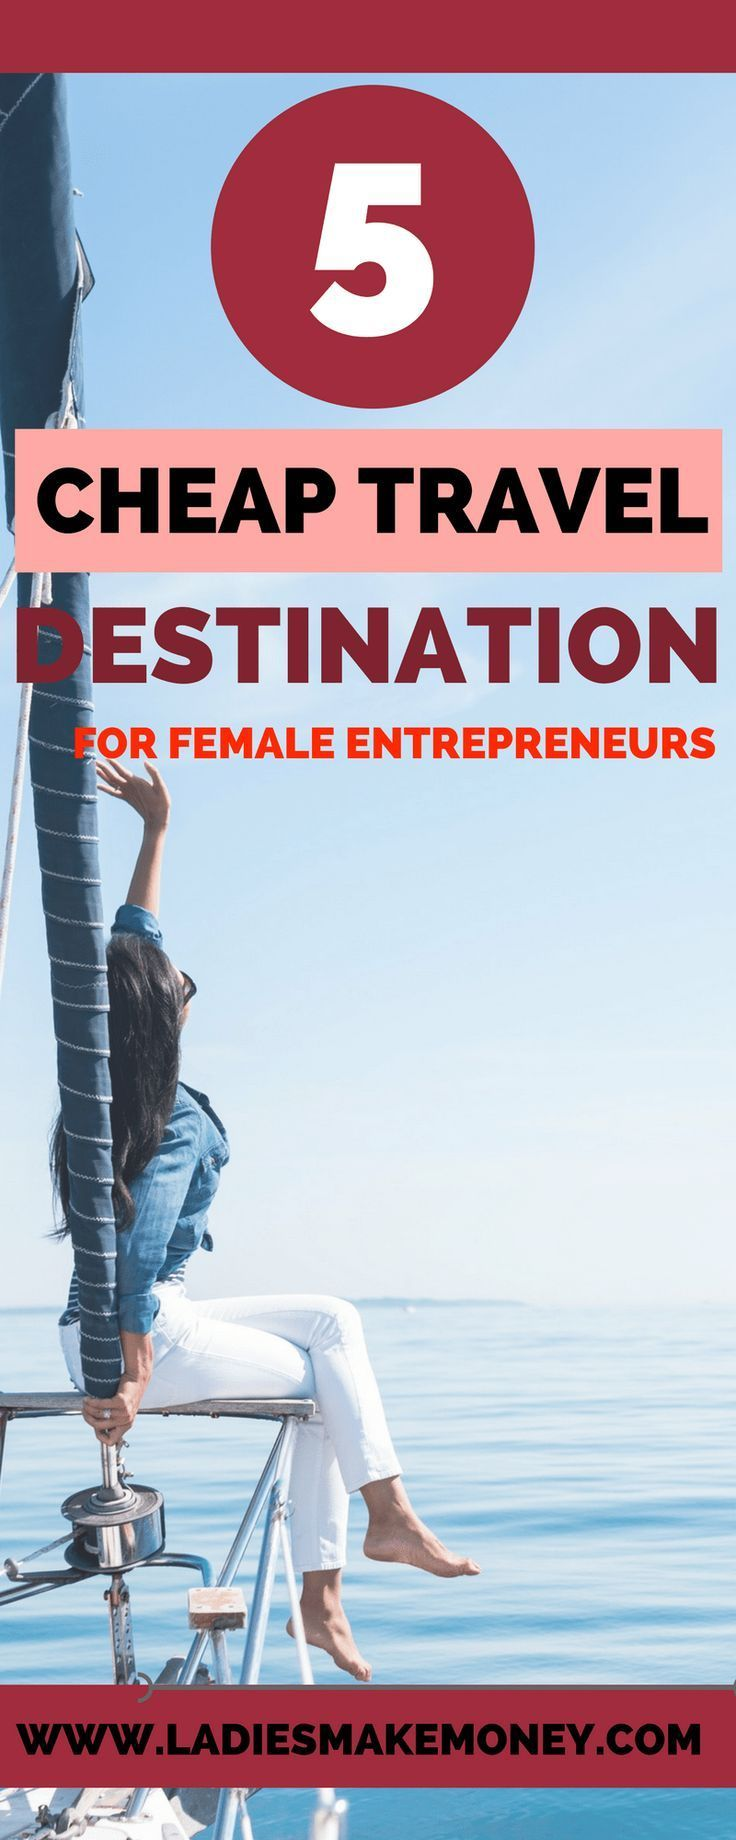 Cheap travel destinations for female entrepreneurs, cheap travel destinations budget, travel destination, Travel blog, travel destinations affordable, Travelling tips. #Travel #Traveldestination How to travel on a budget and save money. Travel inspiration. Wedding destination location. Destination wedding locations. #traveldestinations